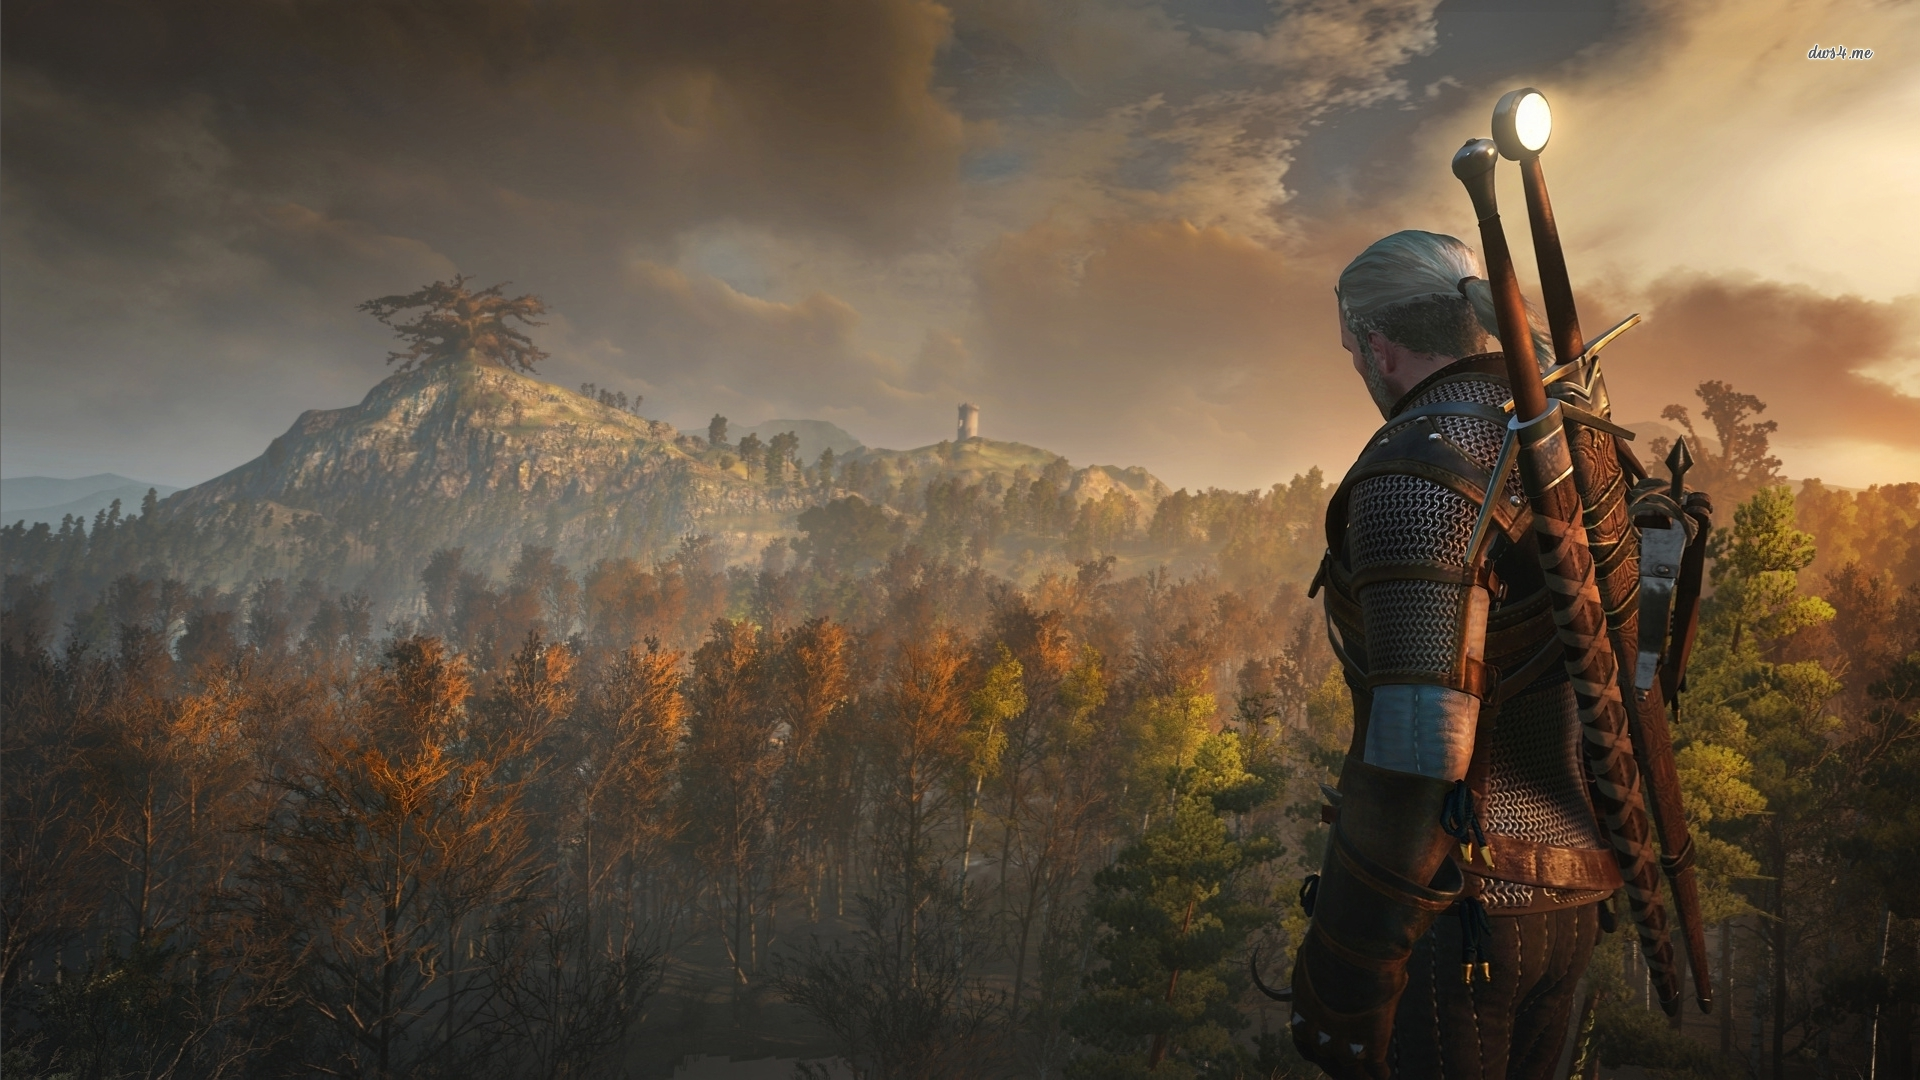 The witcher 3 wallpaper 1920x1080